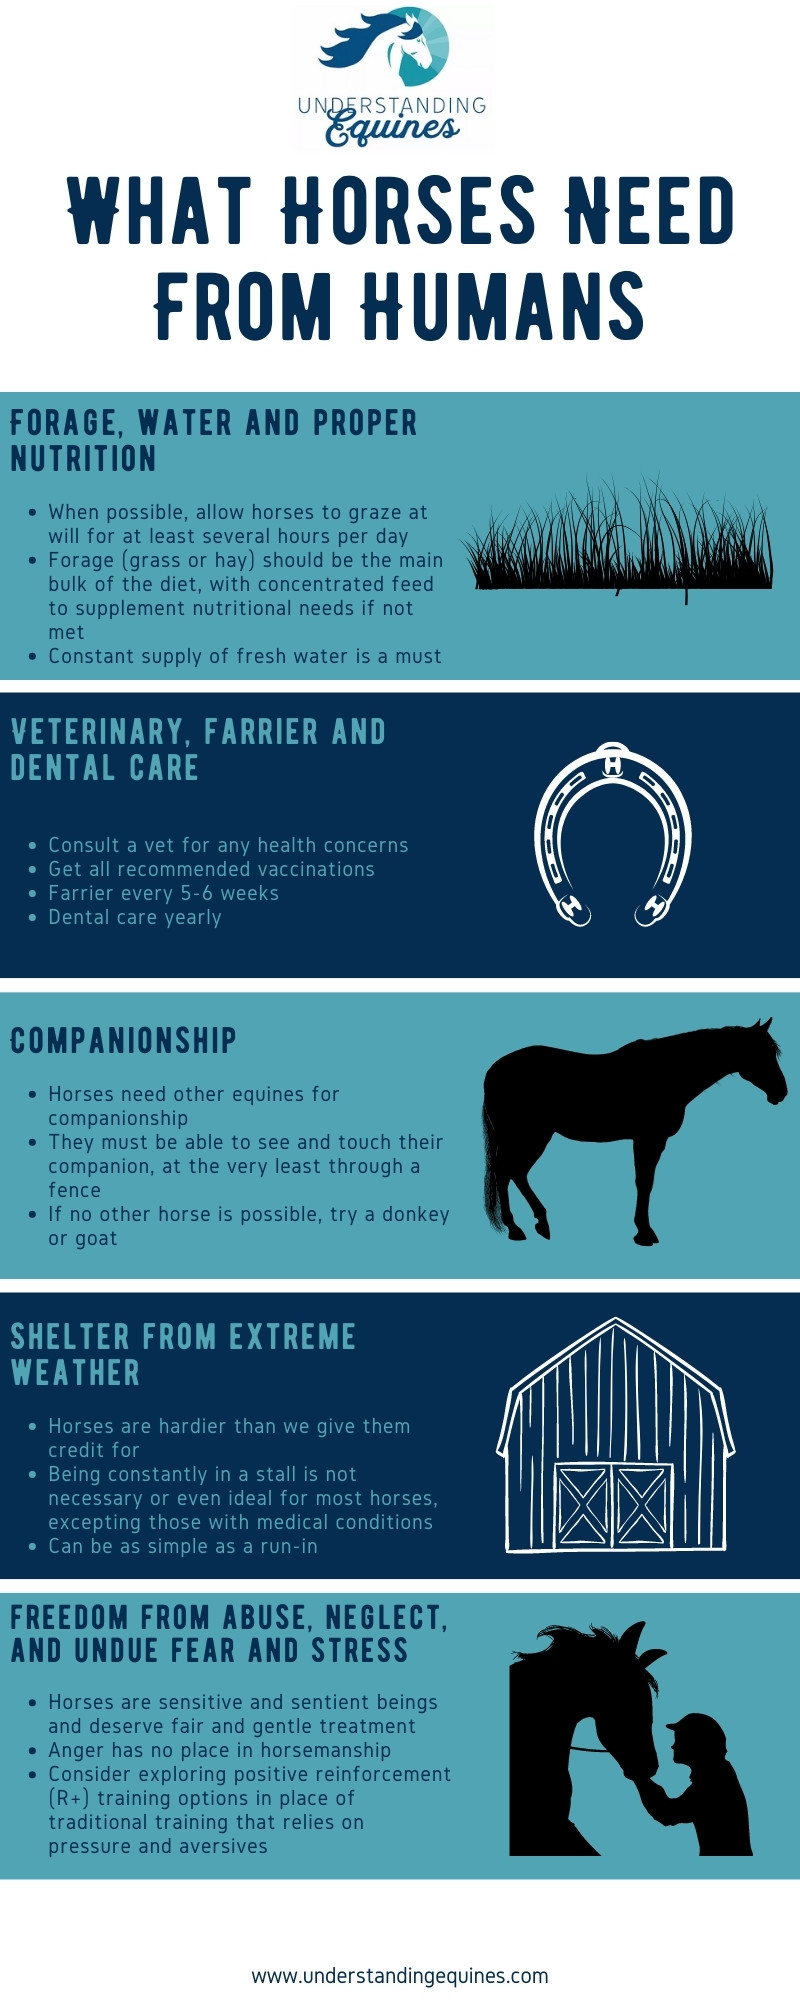 what horses need from humans infographic